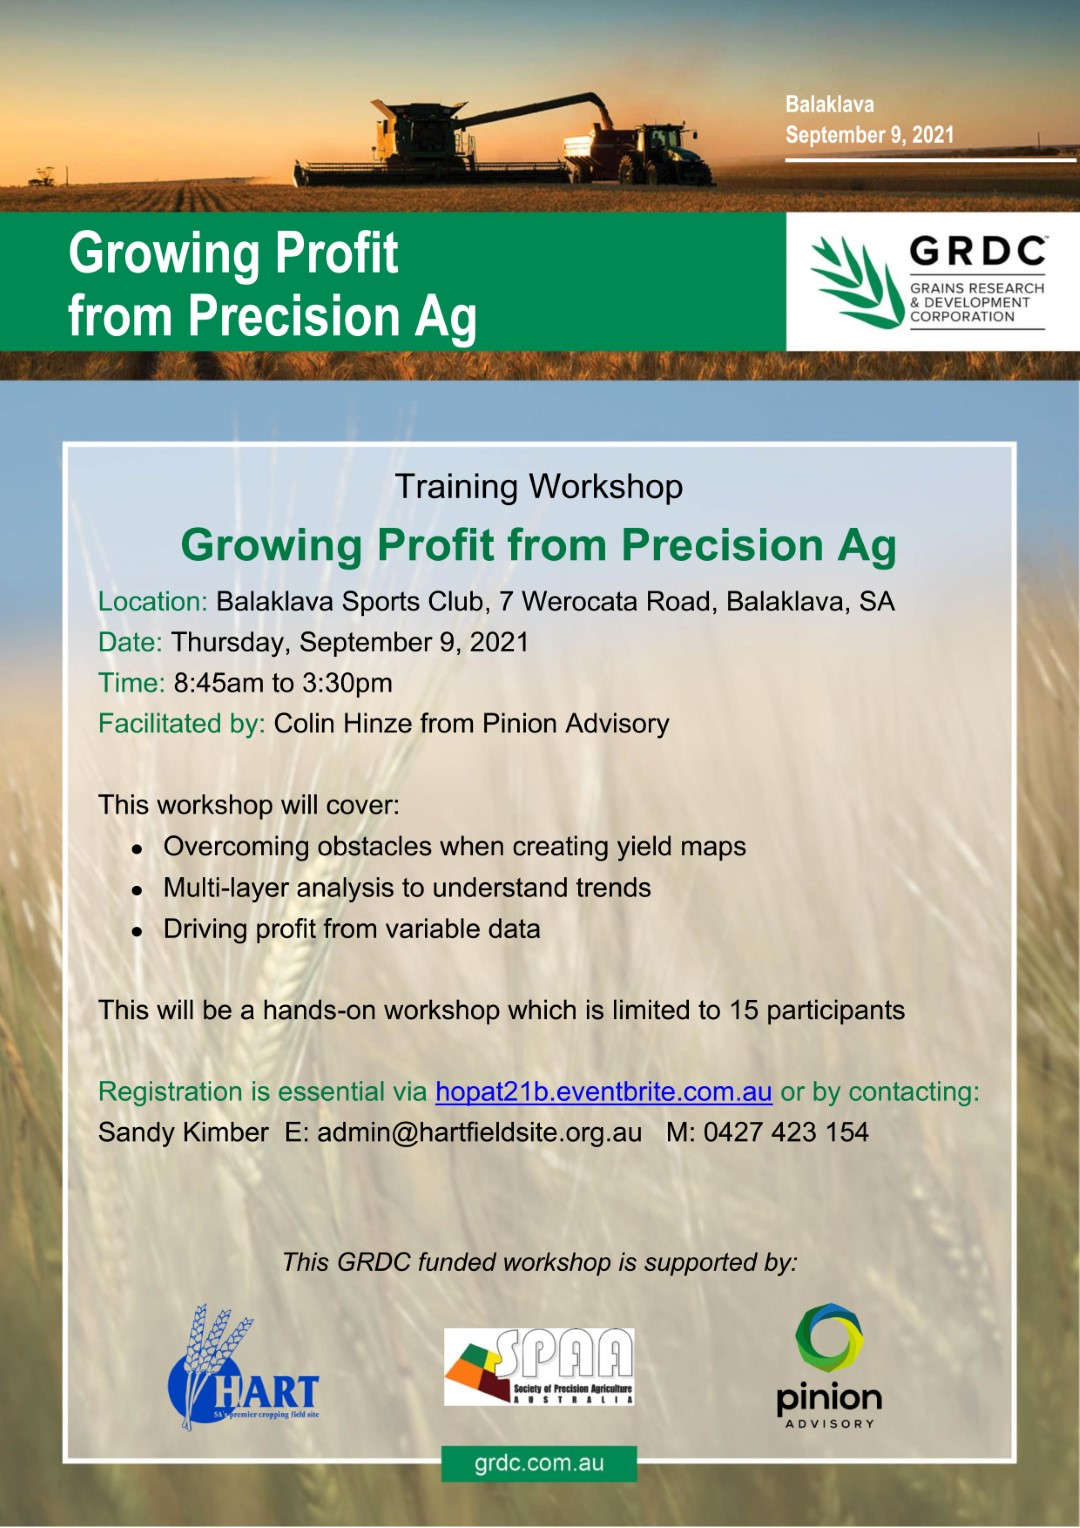 Growing Profit from Precision Ag